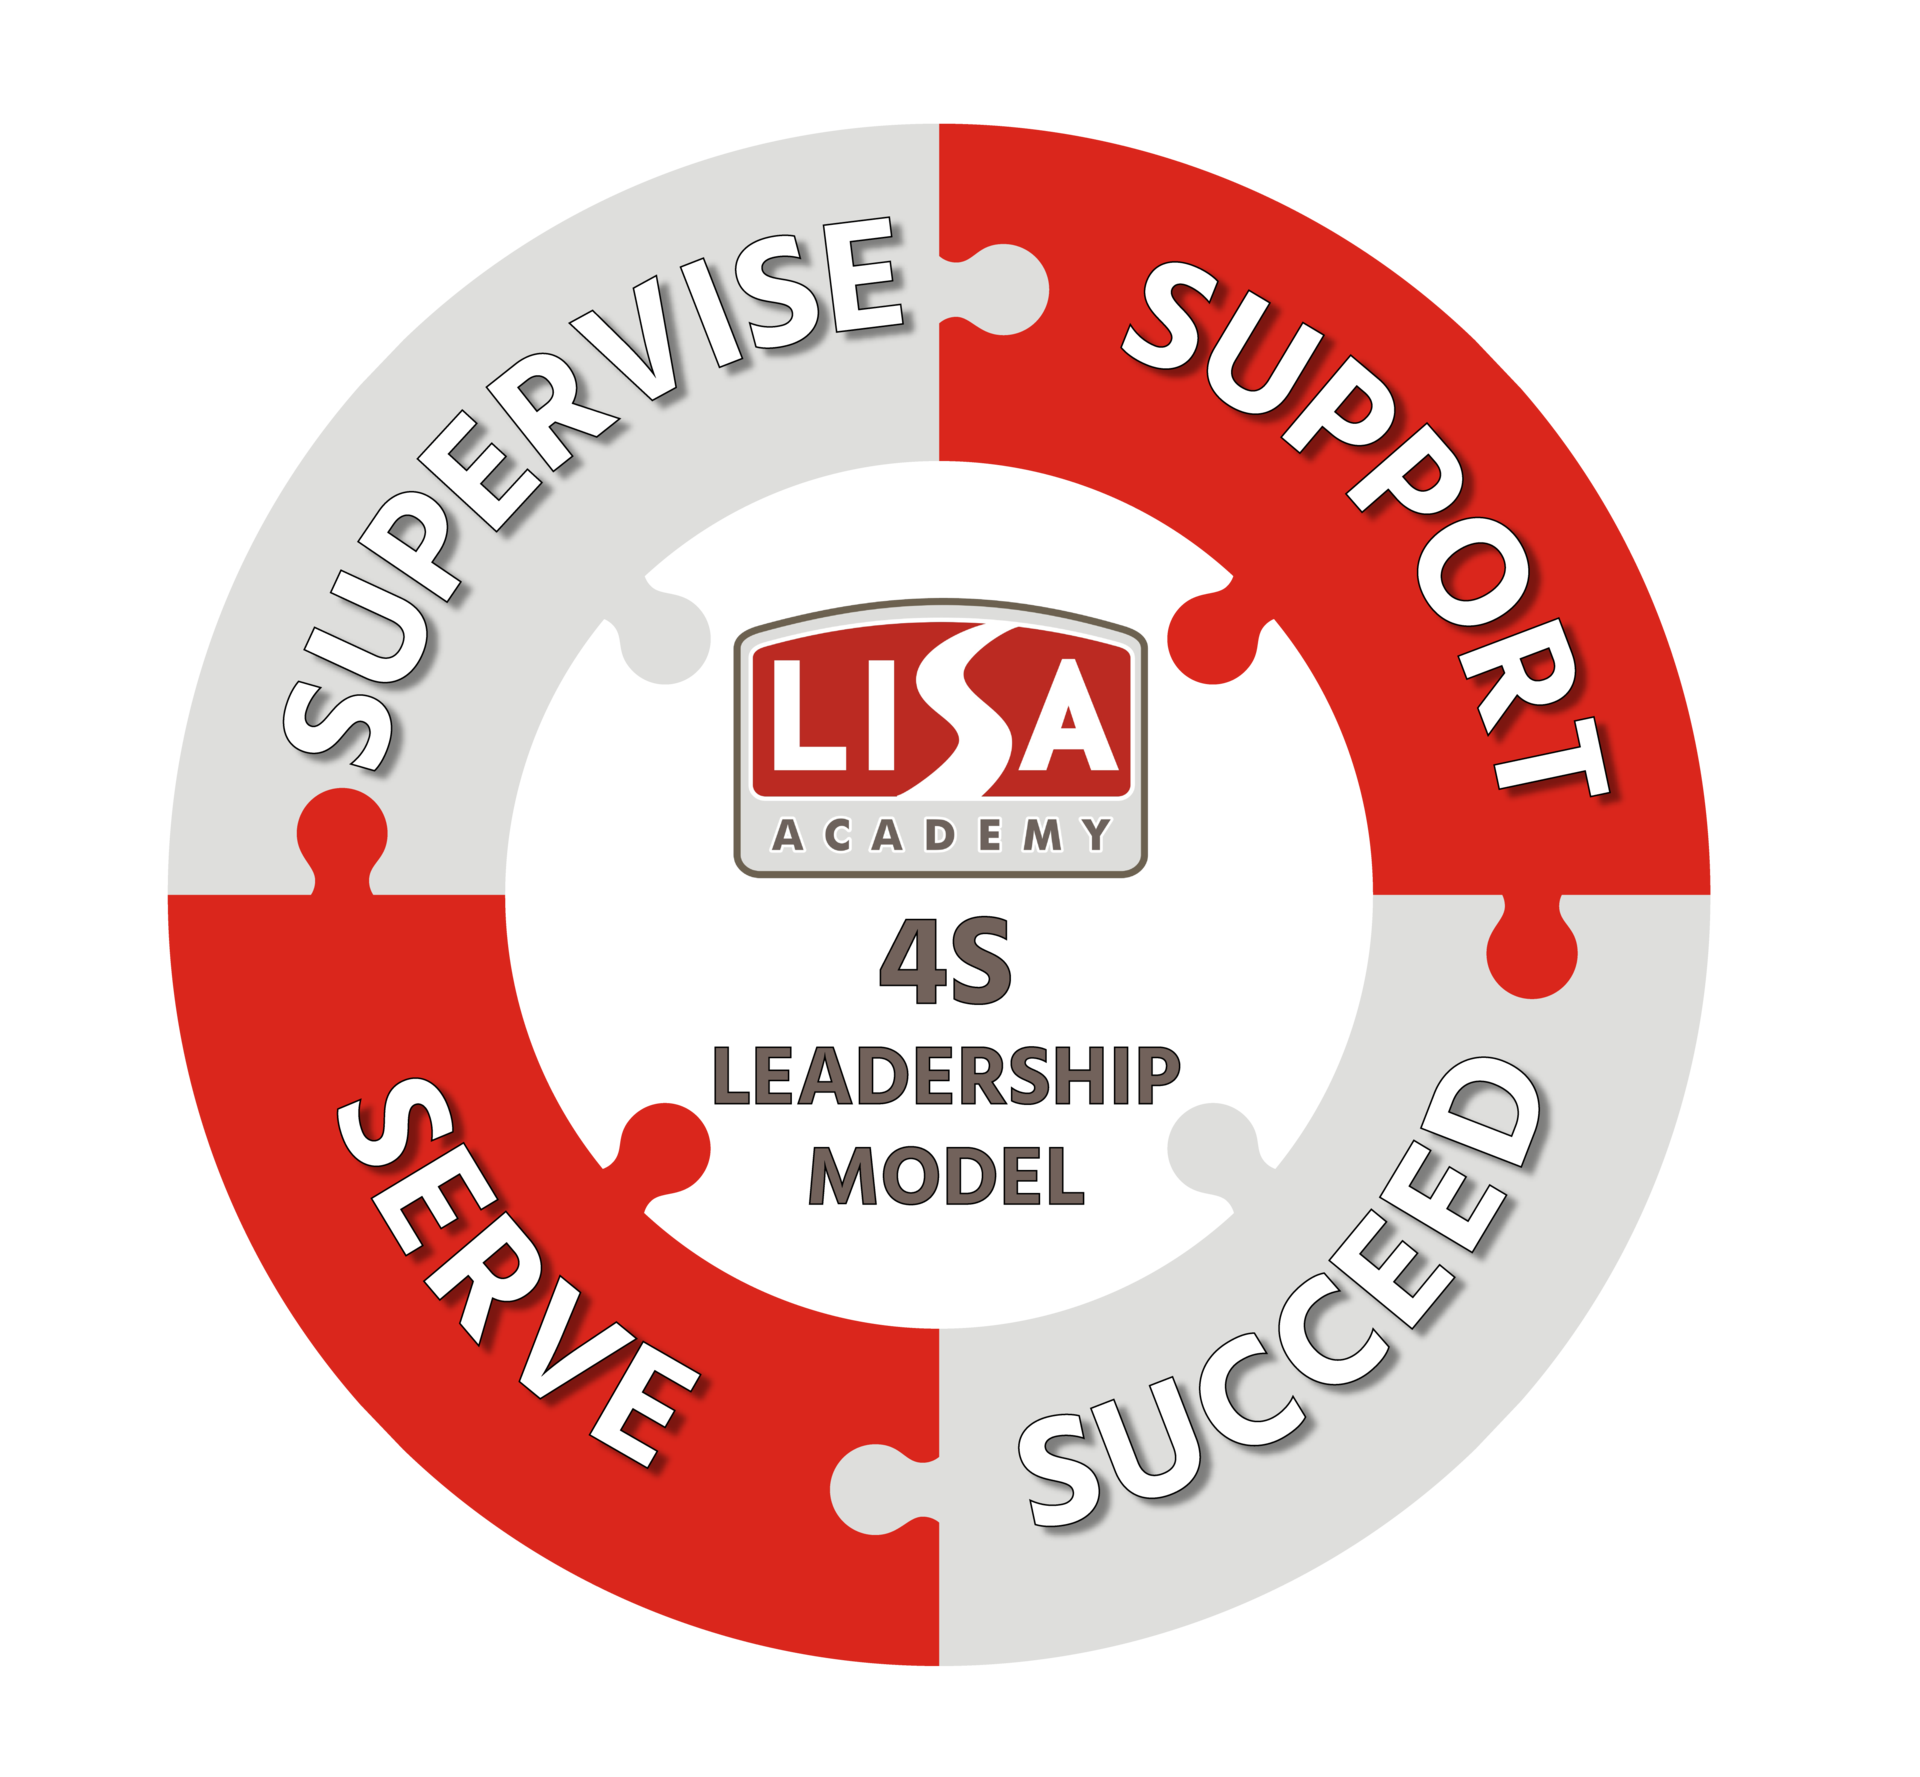 4S Leadership Graphic